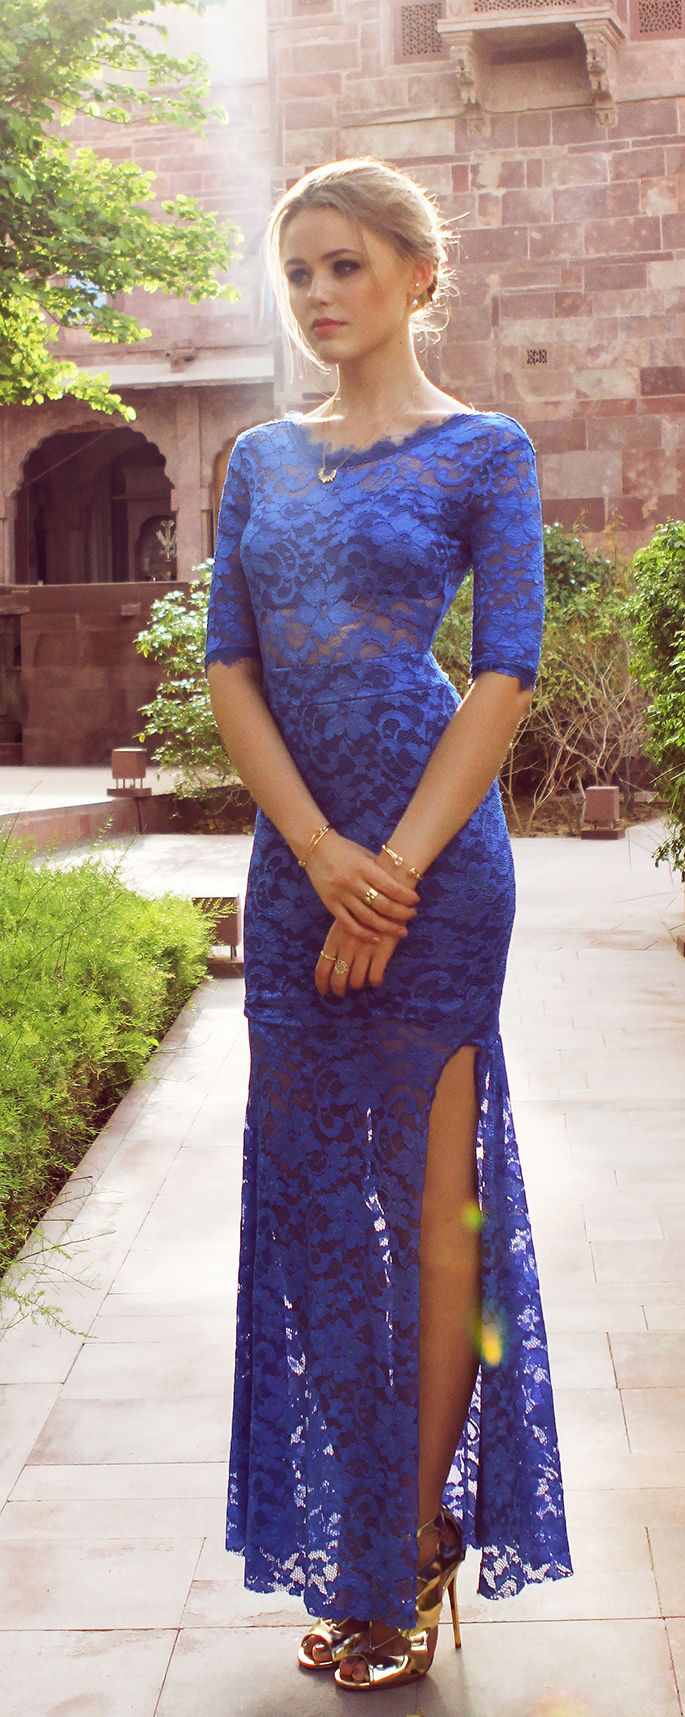 Kristina Bazan is wearing a blue lace dress from Sheinside and golden shoes from Jimmy Choo